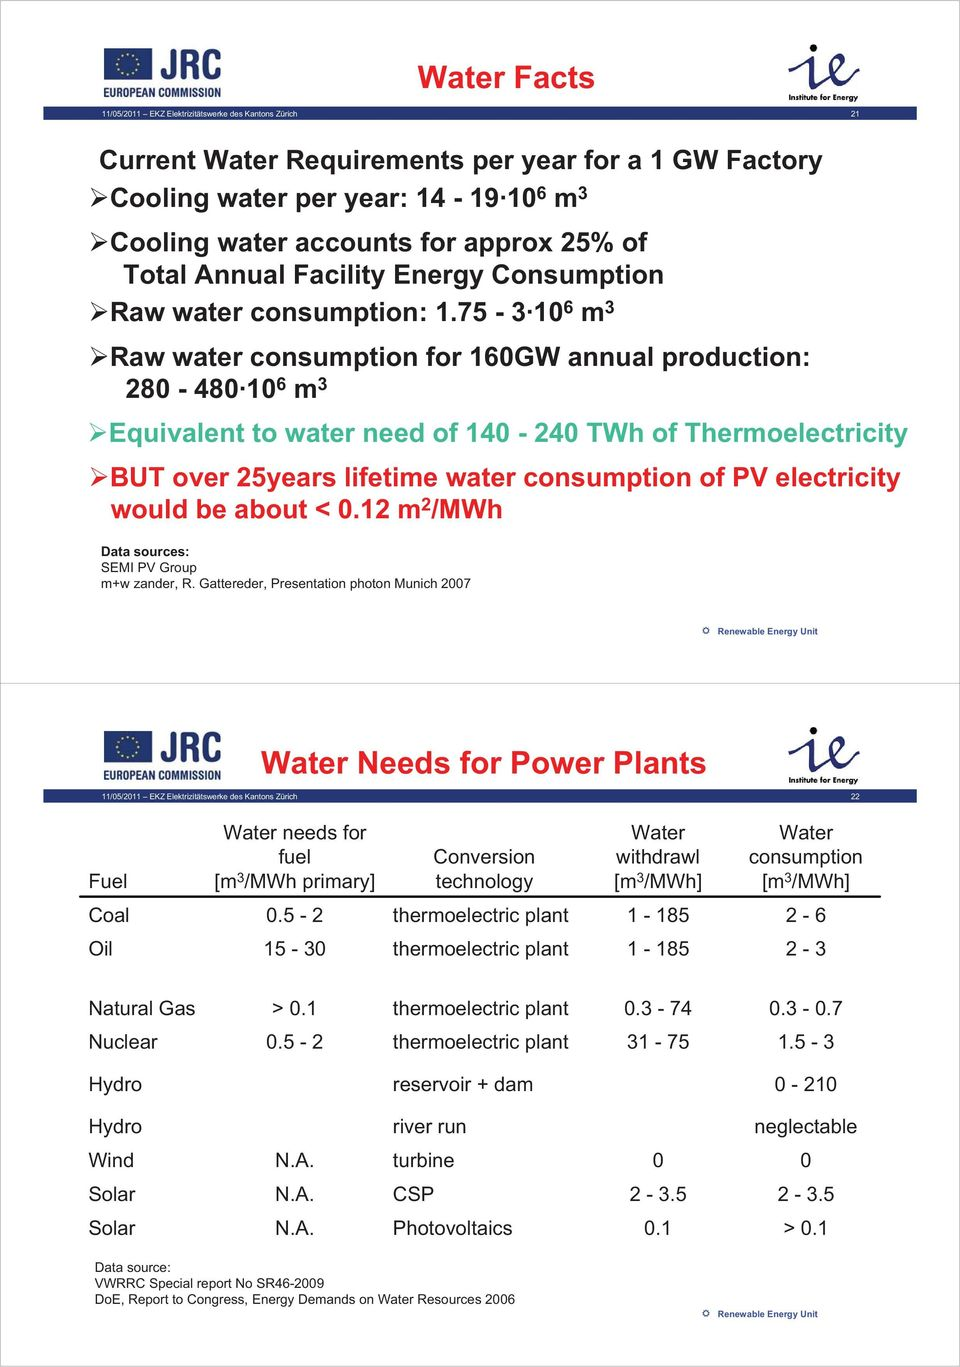 75-3 10 6 m 3 Raw water consumption for 160GW annual production: 280-480 10 6 m 3 Equivalent to water need of 140-240 TWh of Thermoelectricity BUT over 25years lifetime water consumption of PV